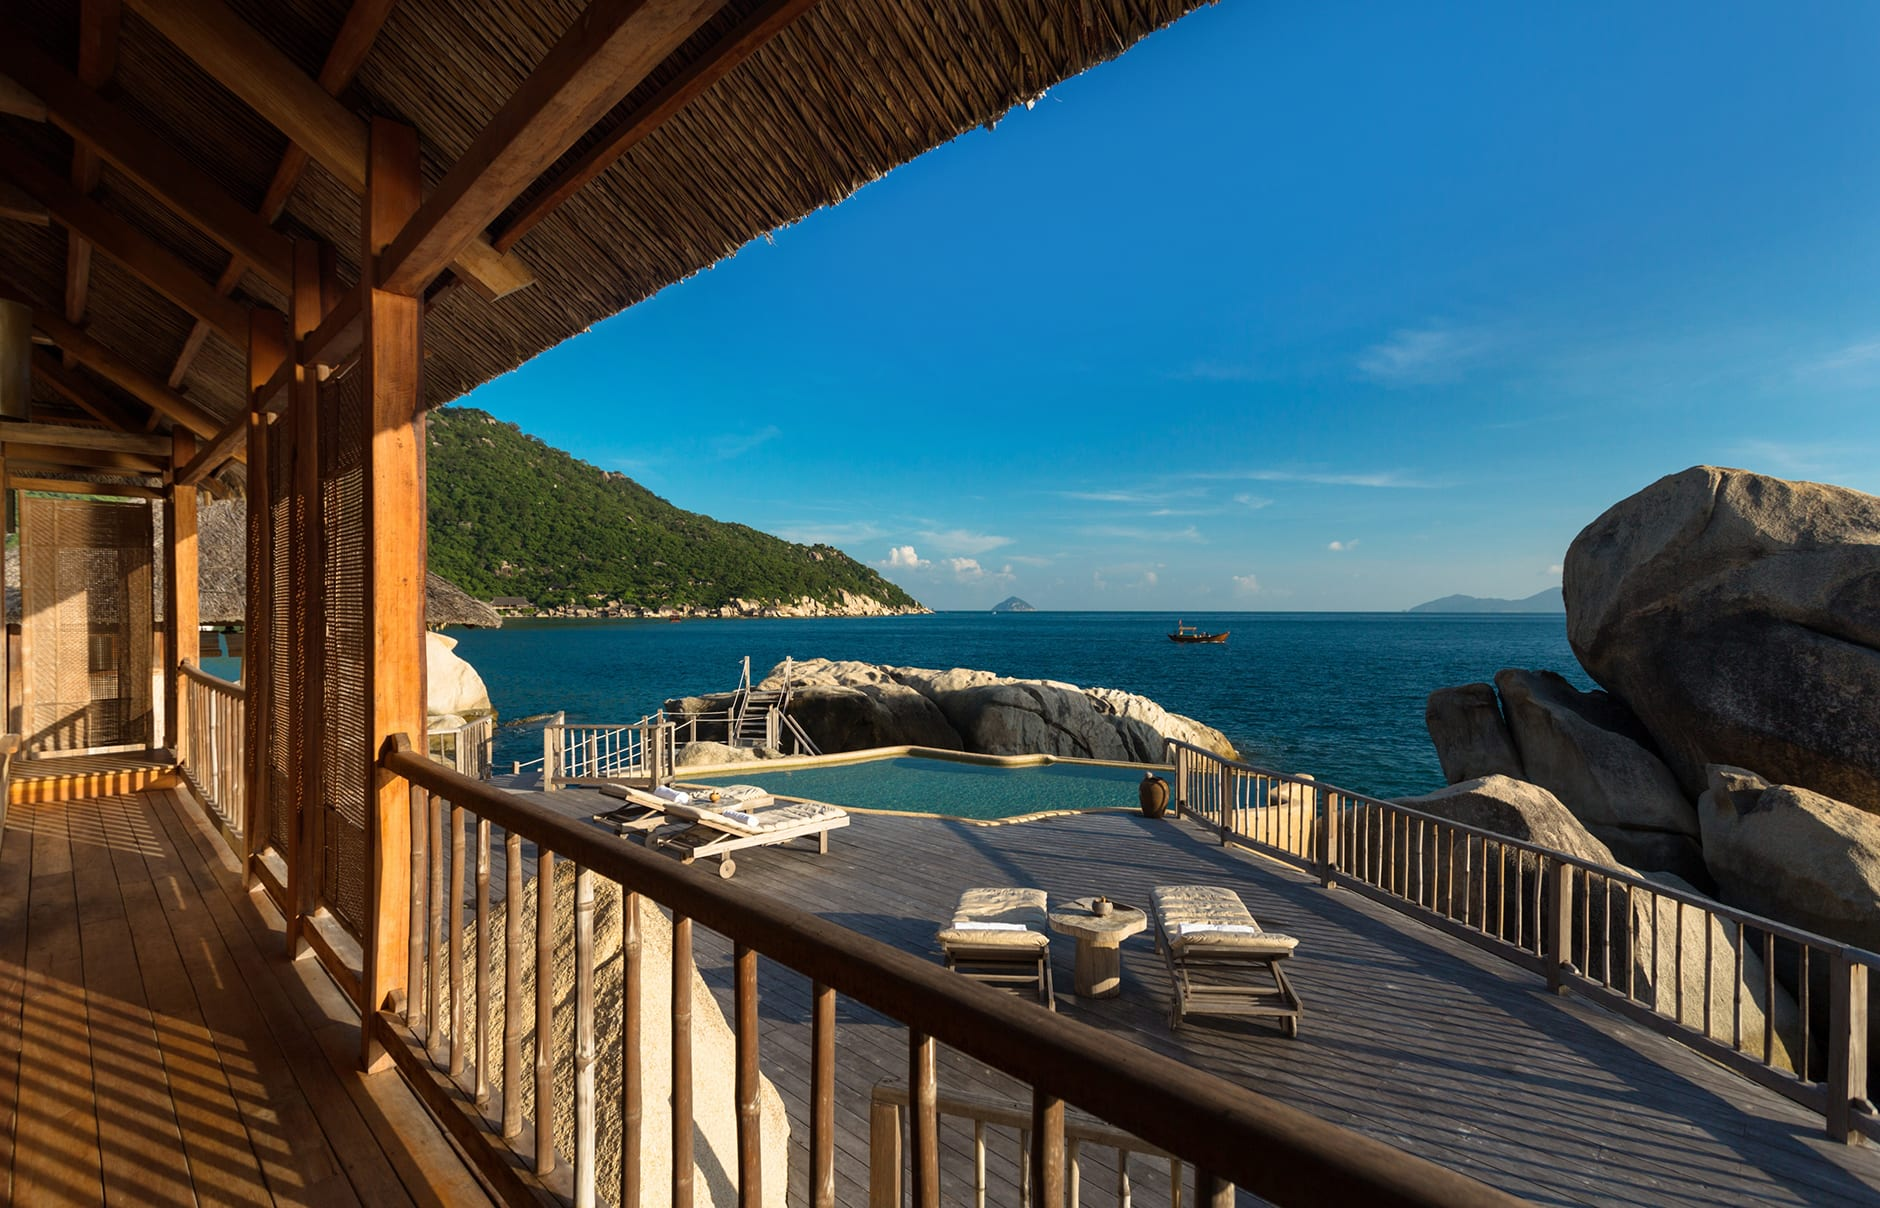 The Rock Retreat pool deck. Six Senses Ninh Van, Nha Trang, Vietnam. © Six Senses, fot. Basil Childers